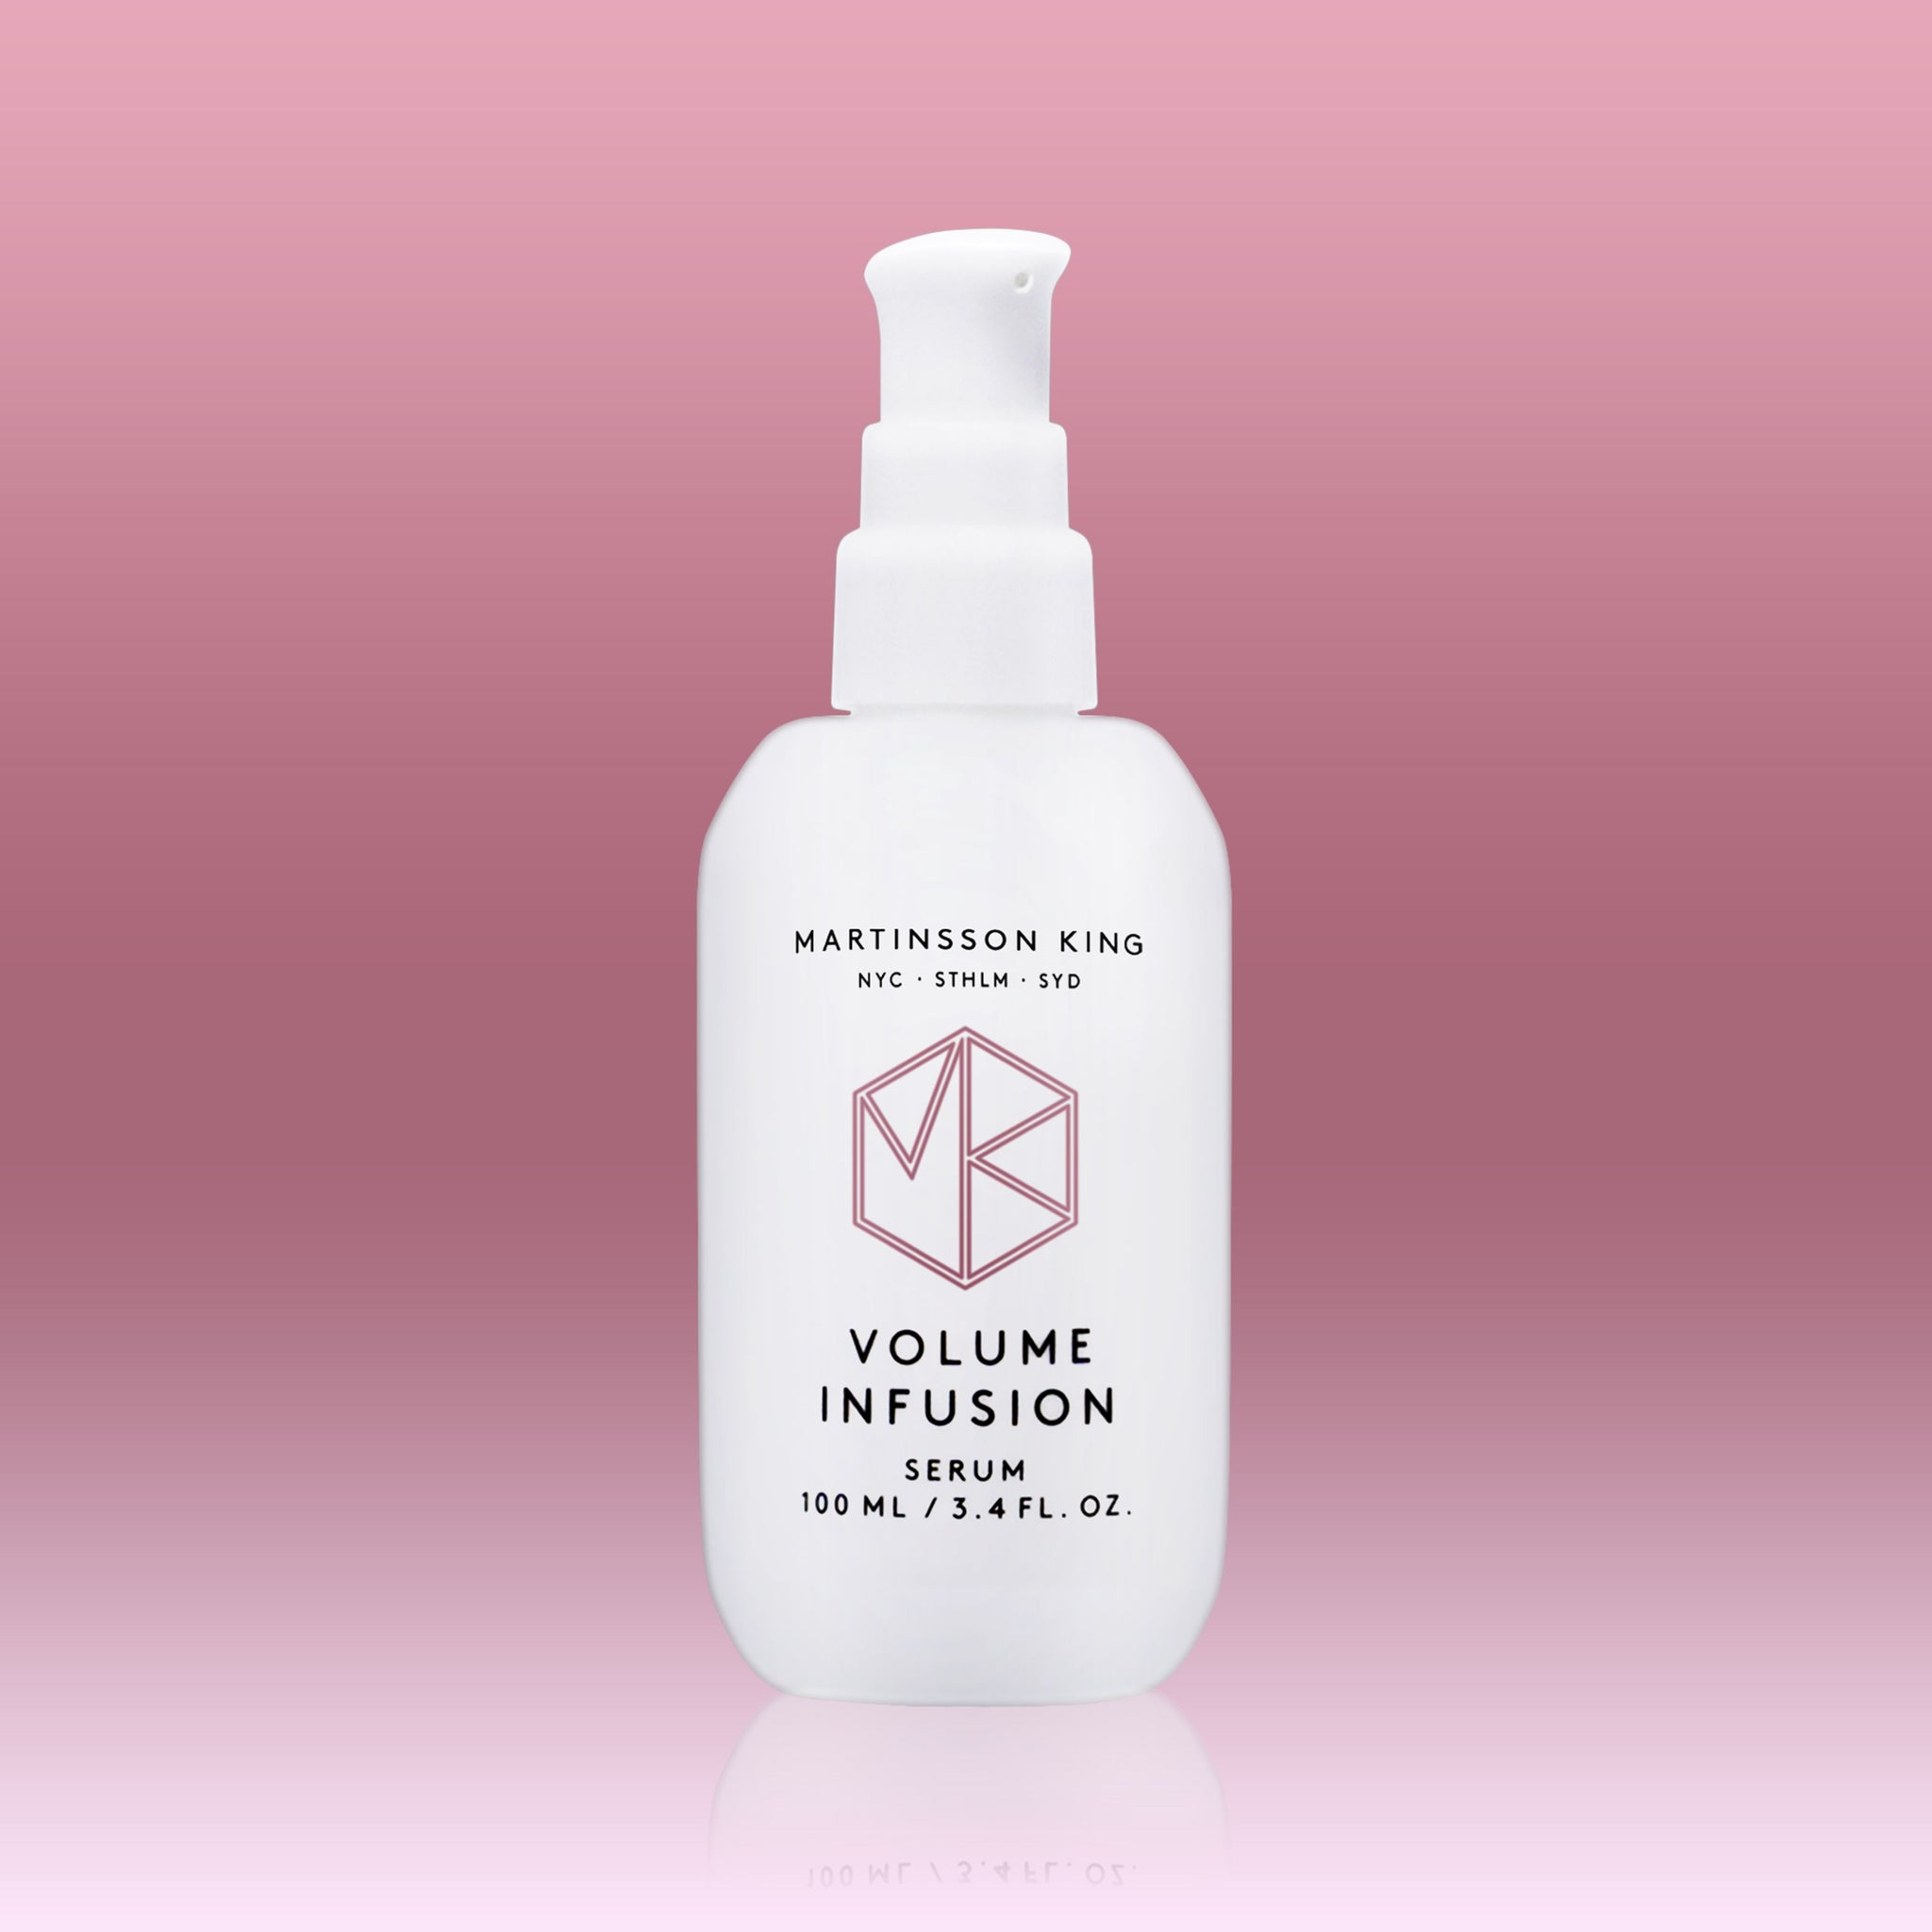 Volume Infusion serum serum 100 ml (3.4 fl.oz) MARTINSSON KING